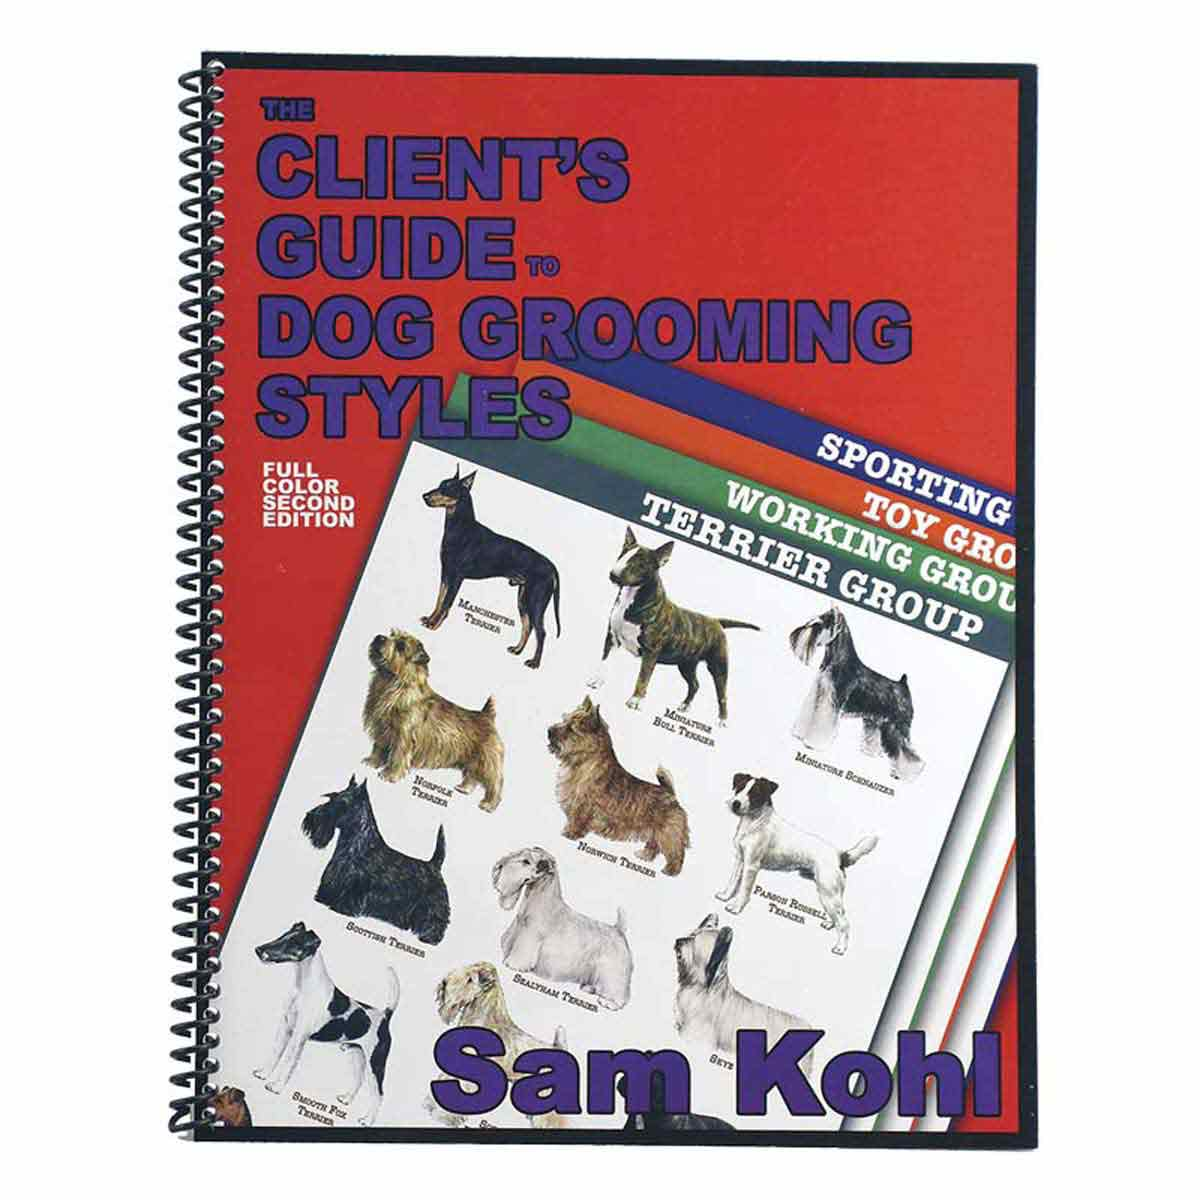 The Client's Guide To Dog Grooming by Sam Kohl - Buy at Ryan's Pet Supplies